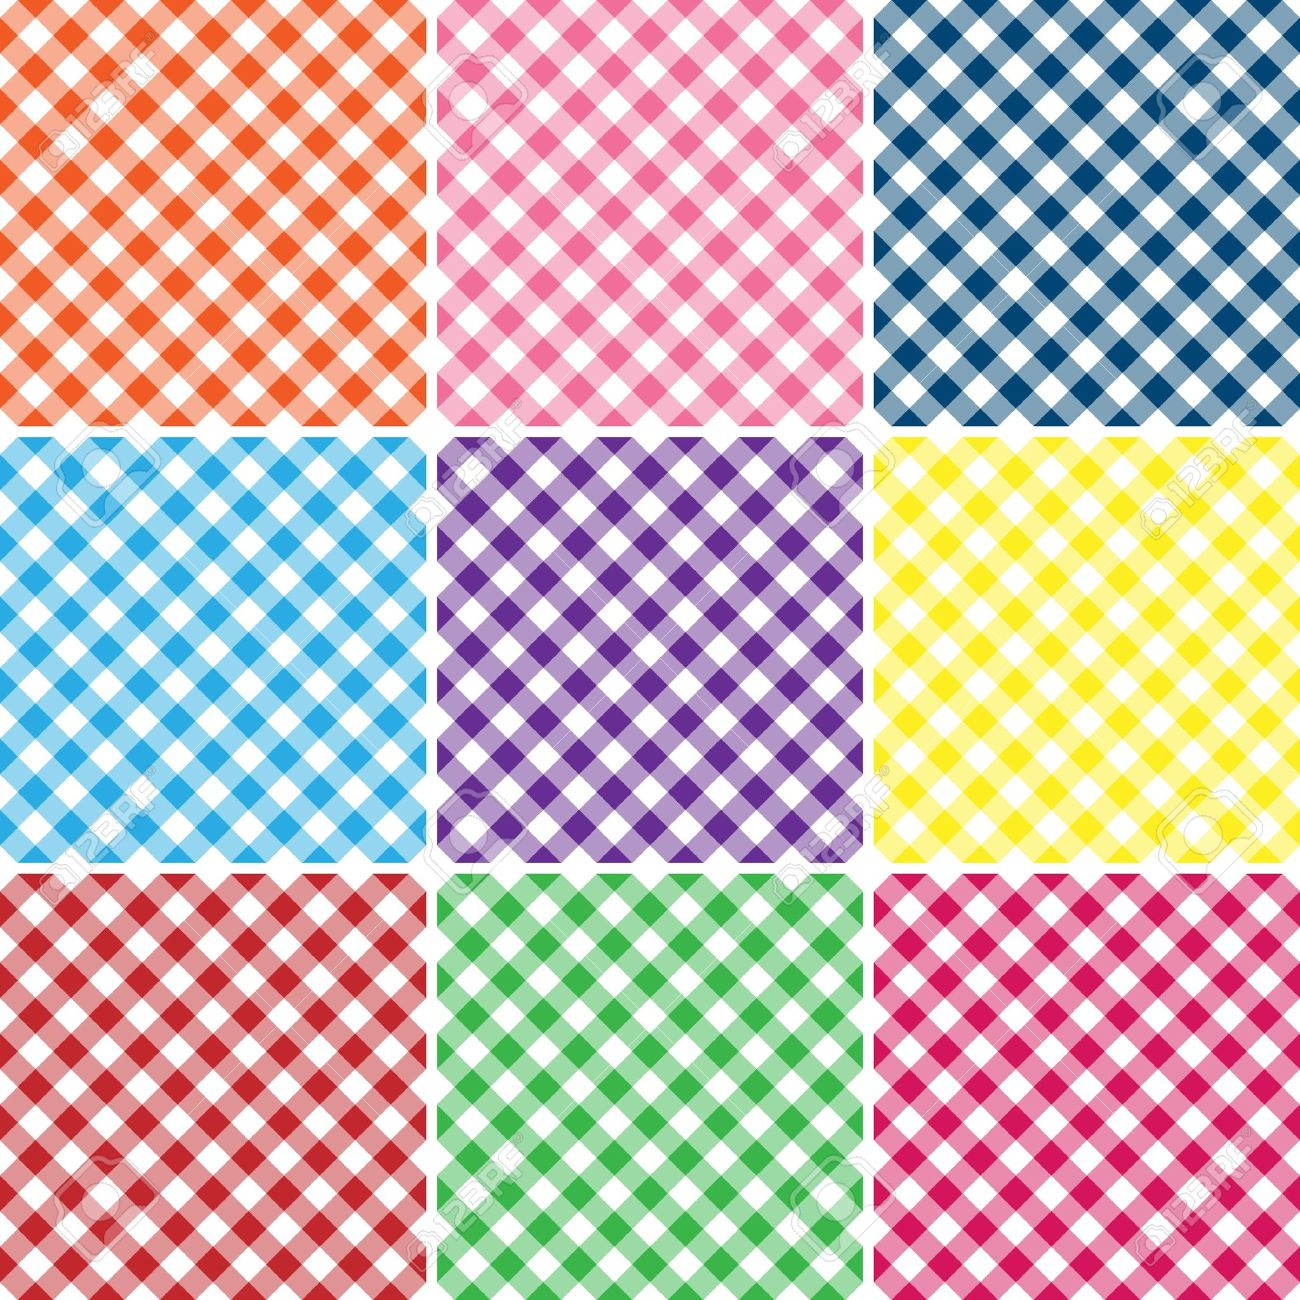 An Illustration Of A Gingham Plaid In Nine Bright Colors Stock.